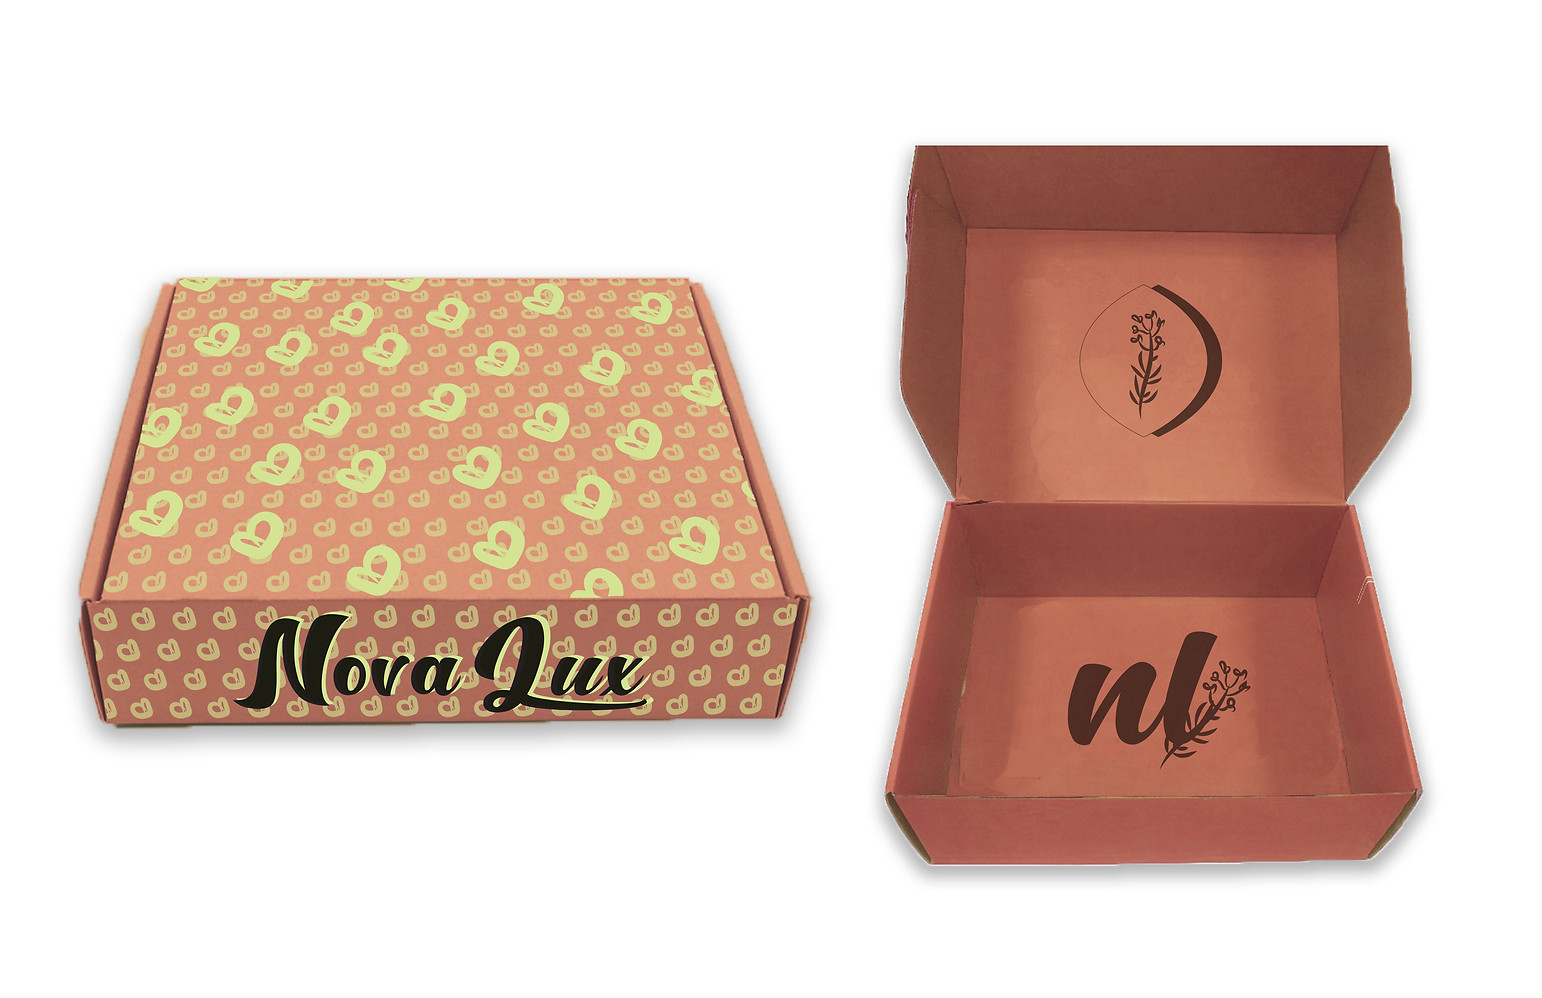 Fake Business Packaging - Nova Lux